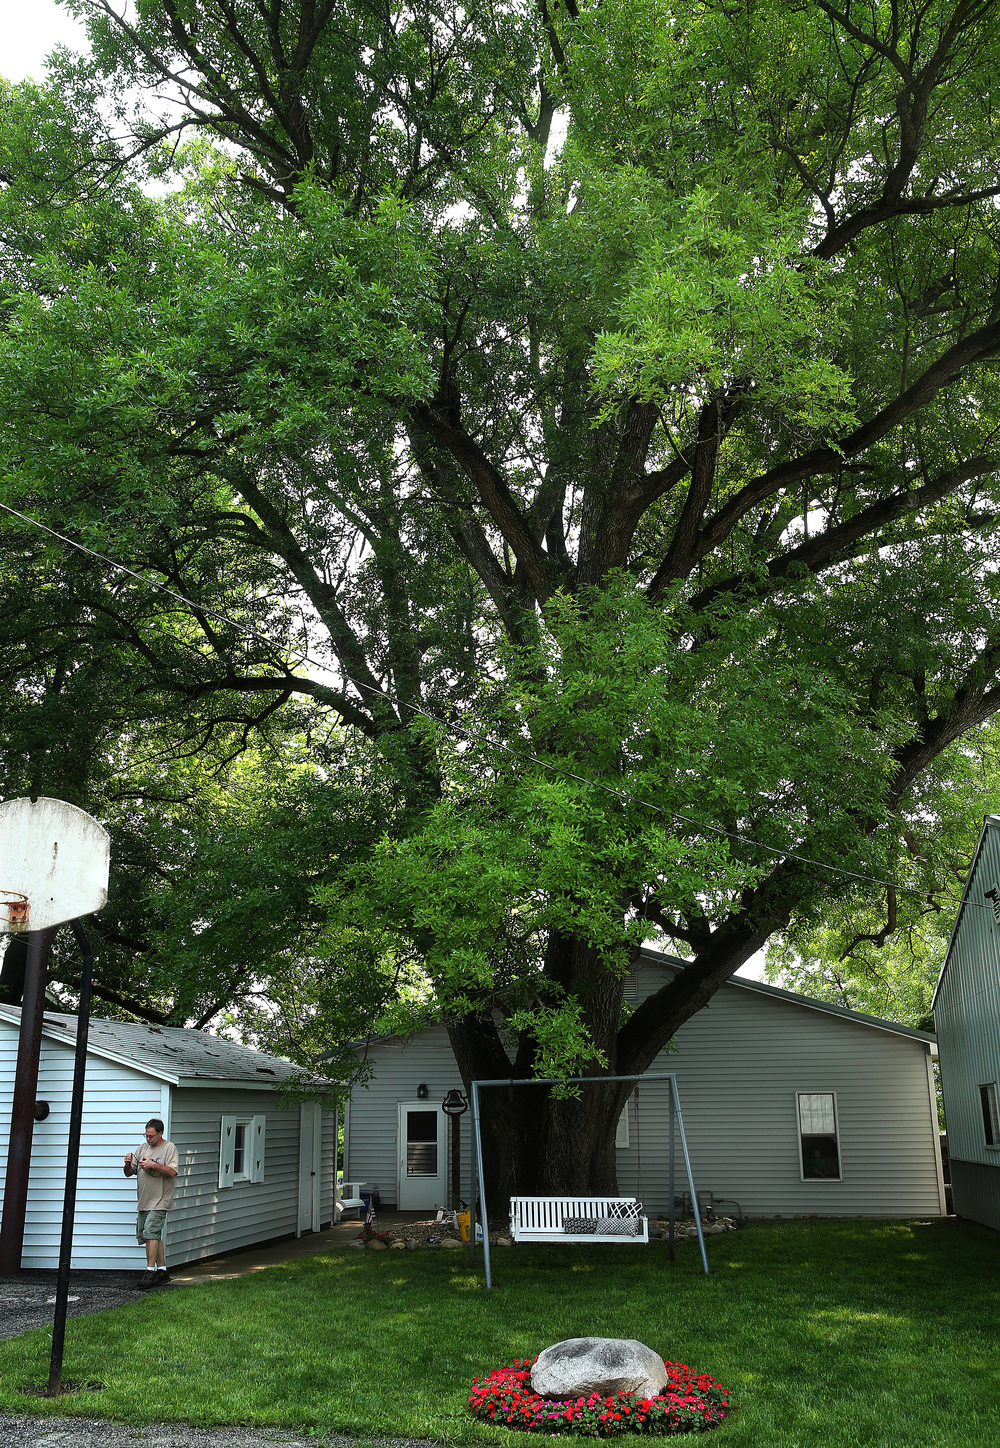 A view of the Champion Green Ash tree, which has held the record as the largest of its' type in Illinois since 1988. David Spencer/The State Journal-Register